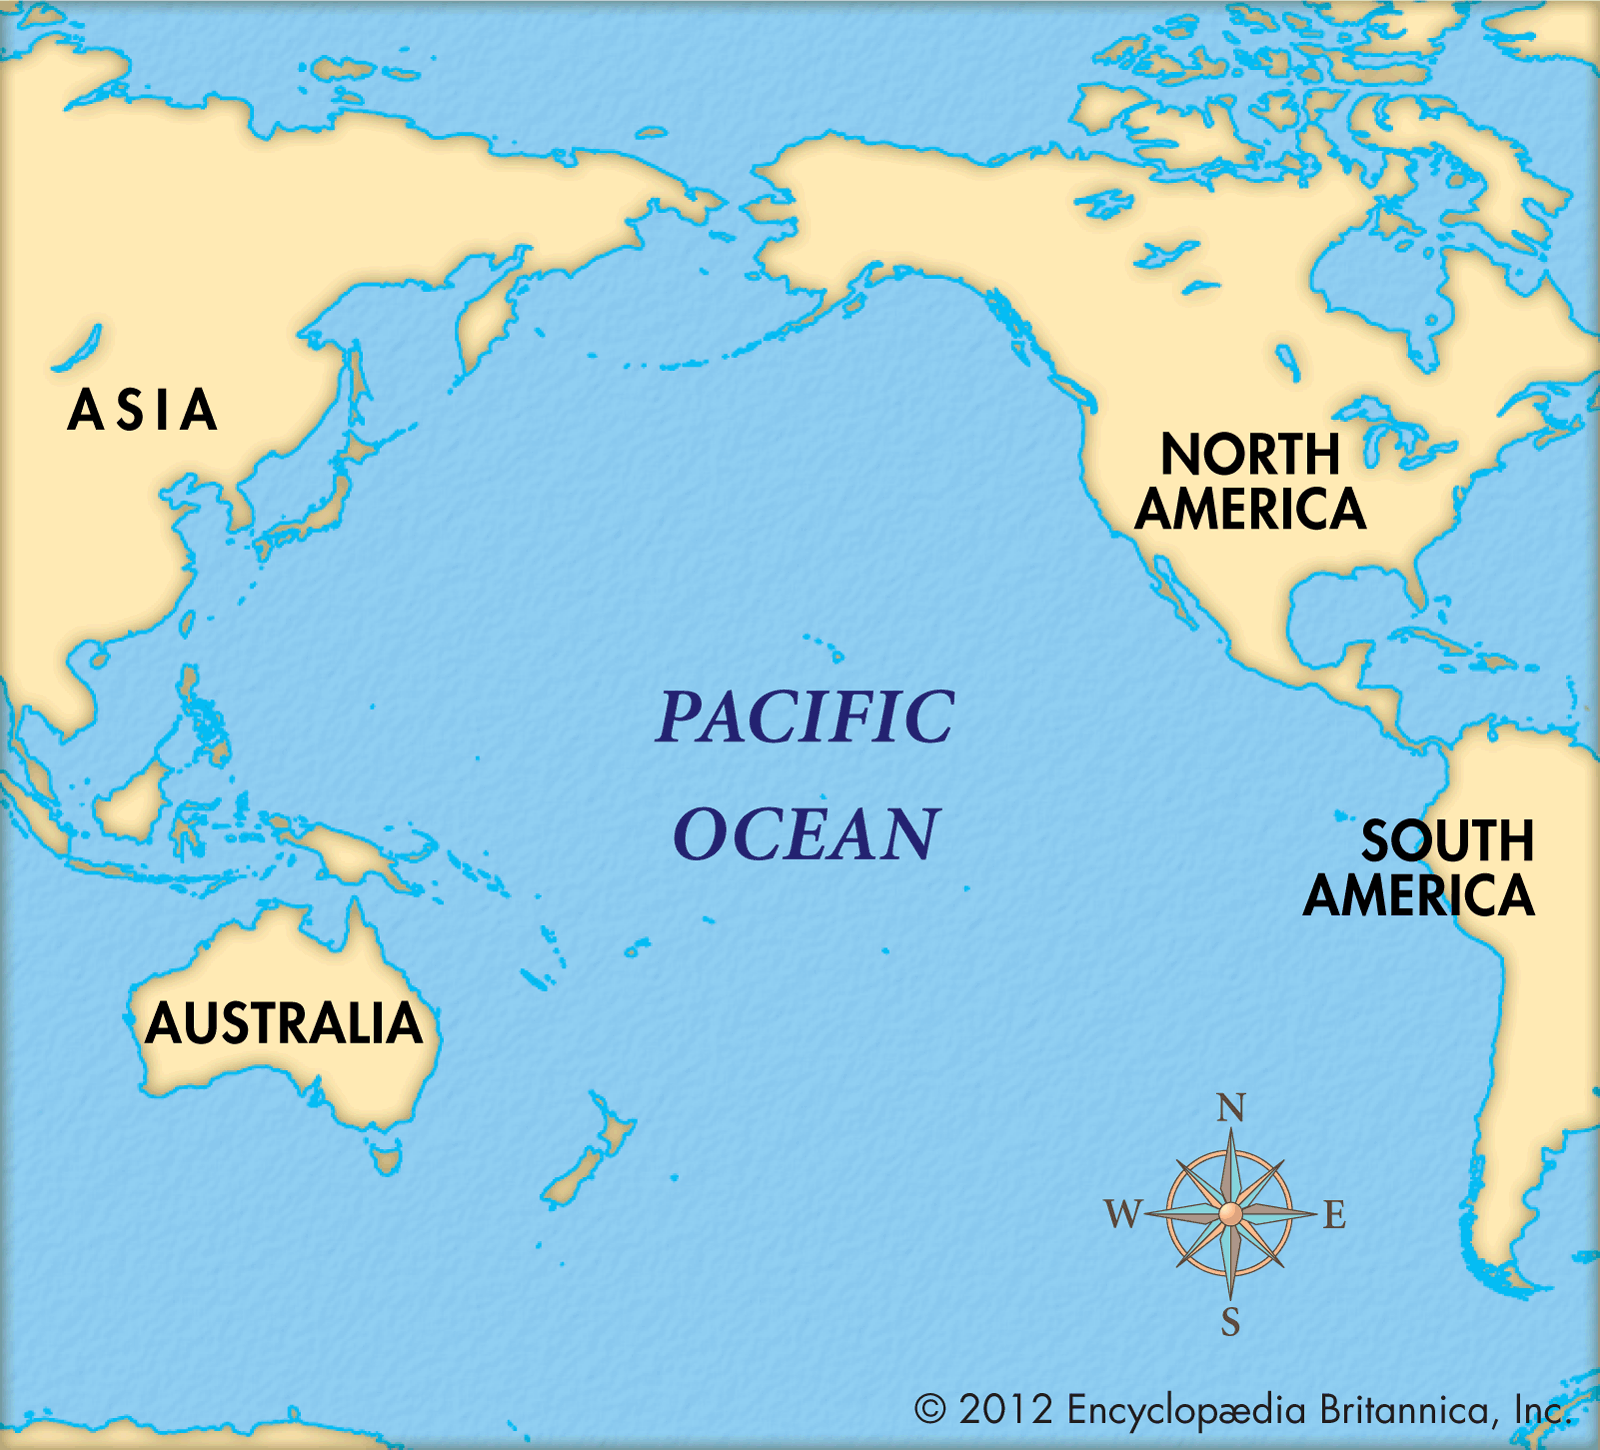 Map Of Pacific Ocean map of pacific ocean islands   Yahoo Image Search results | JESUS  Map Of Pacific Ocean